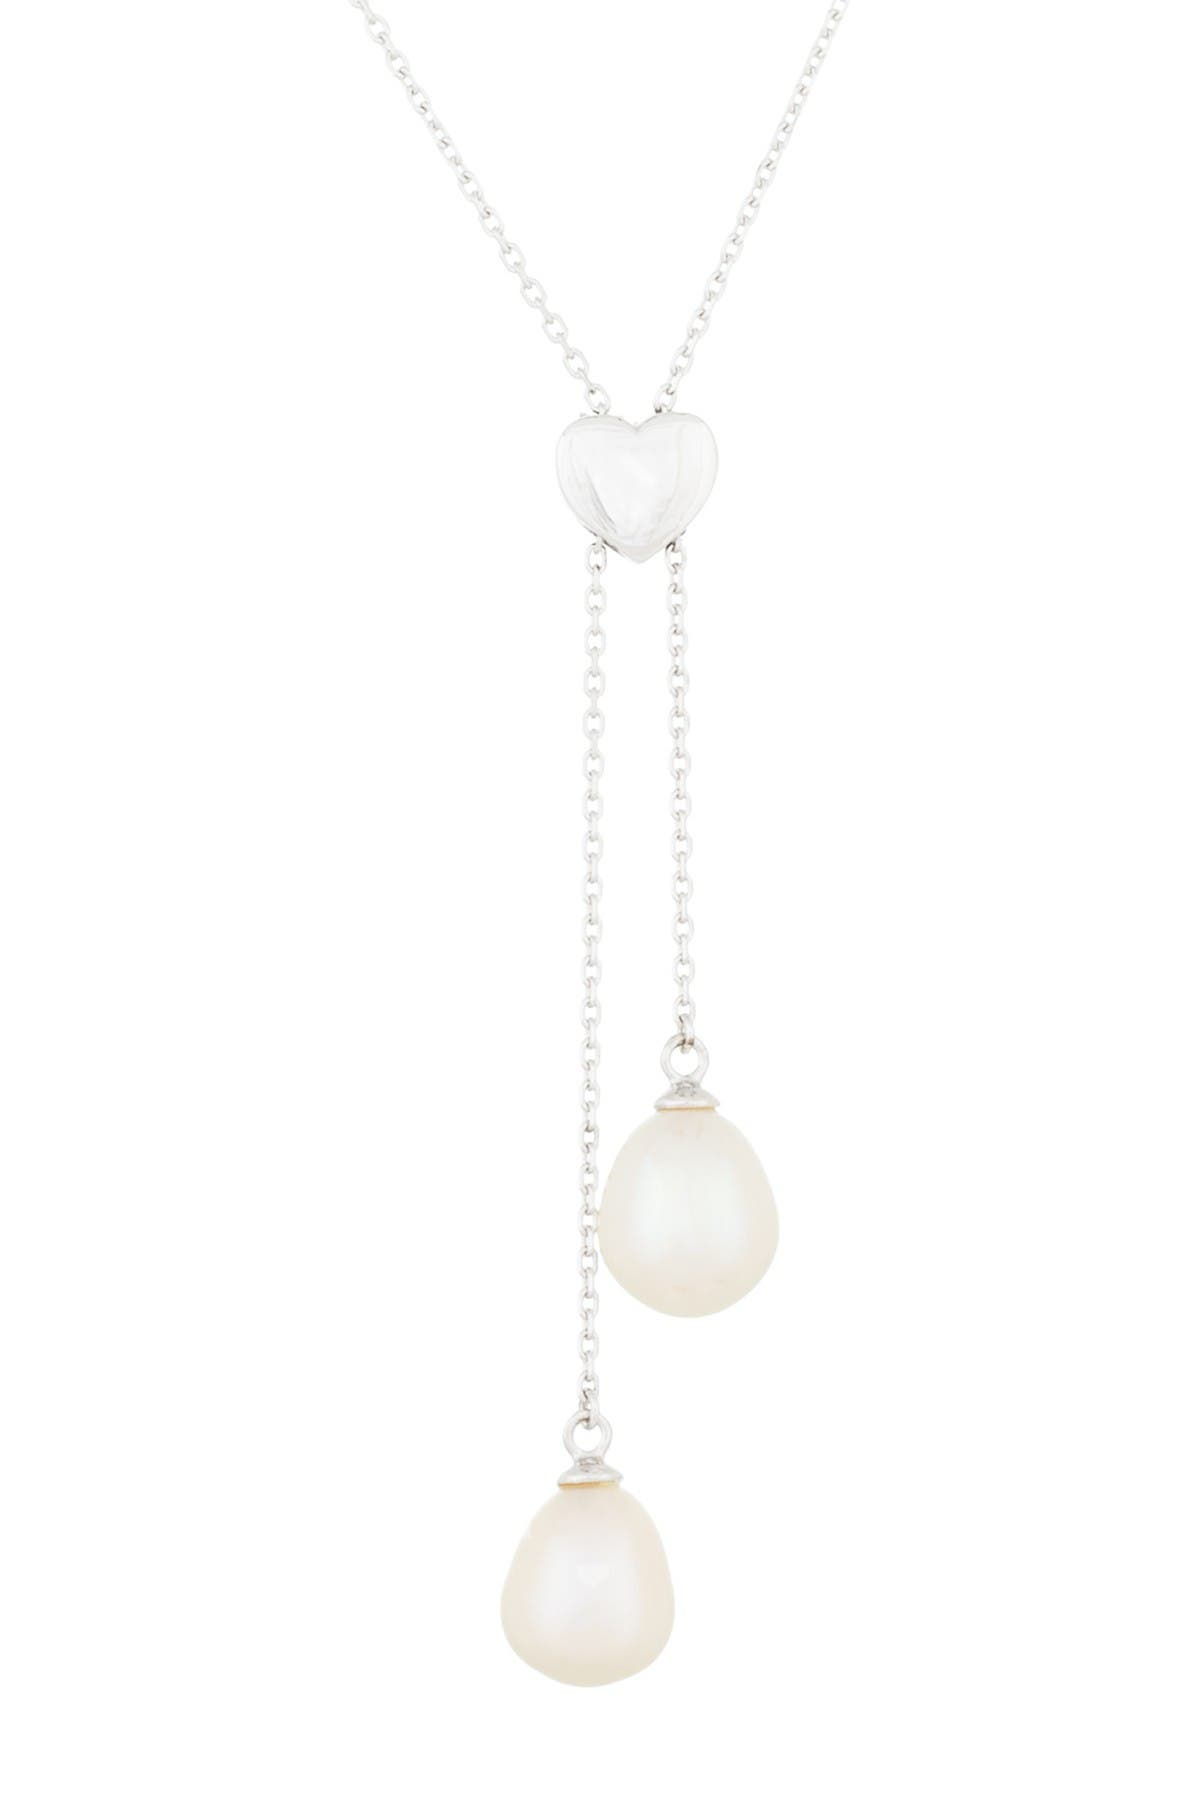 Image of Splendid Pearls Double Dangling Cultured Freshwater 7.5-8mm Pearl Pendant